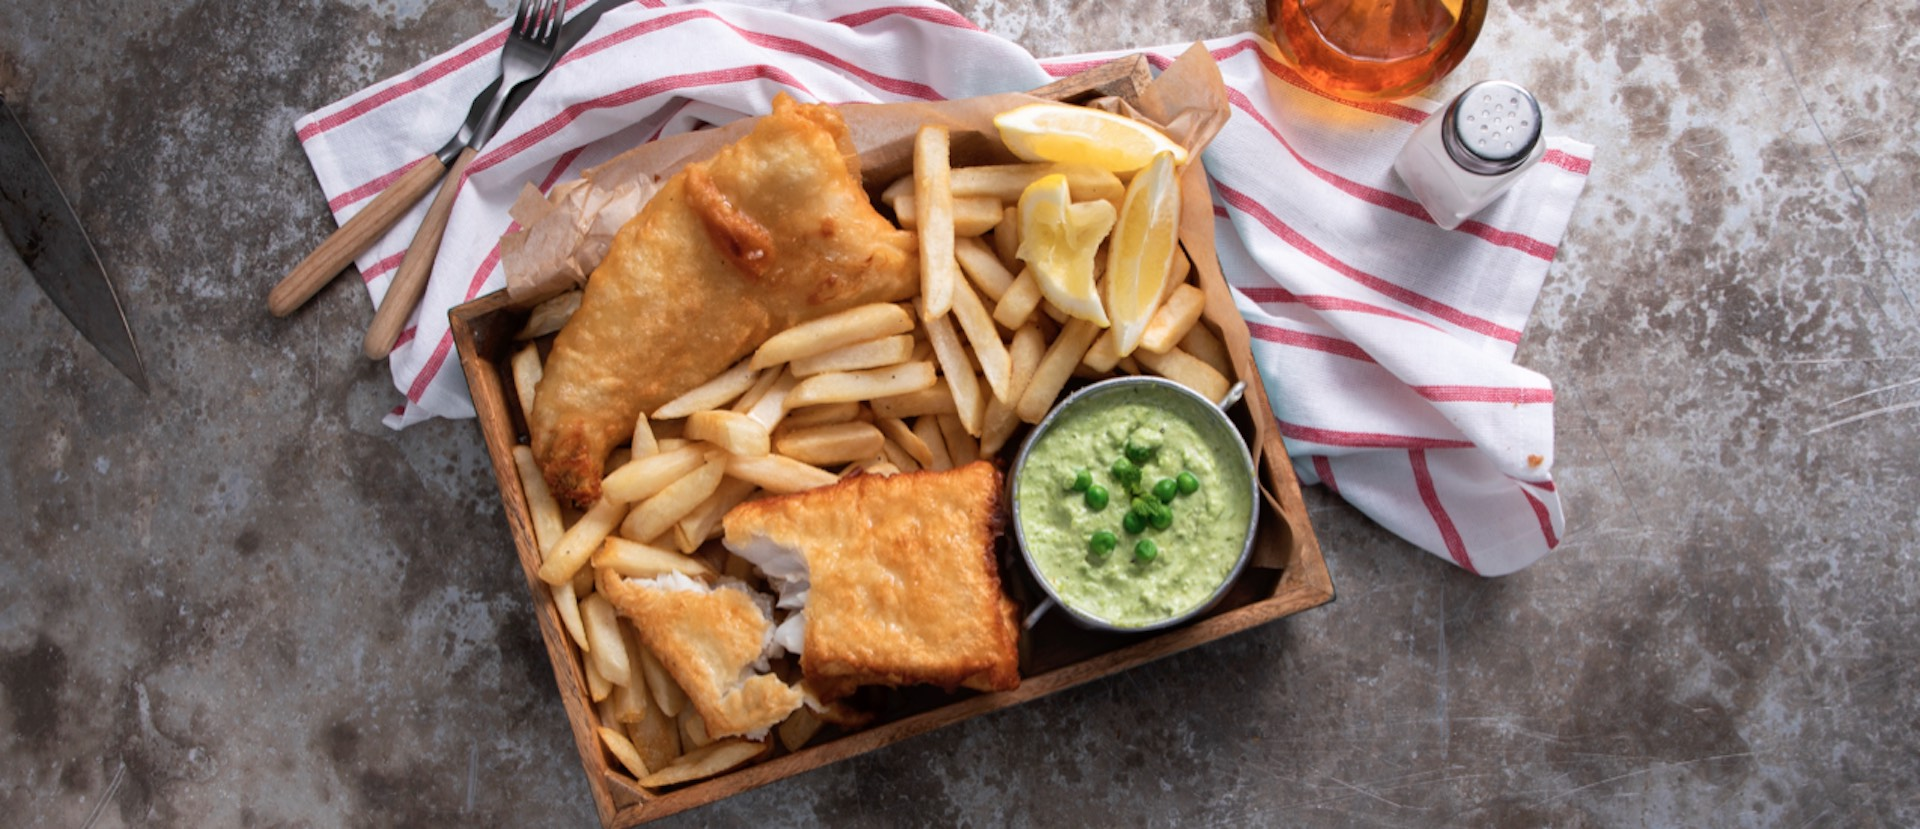 Fried Fish with Slap Chips